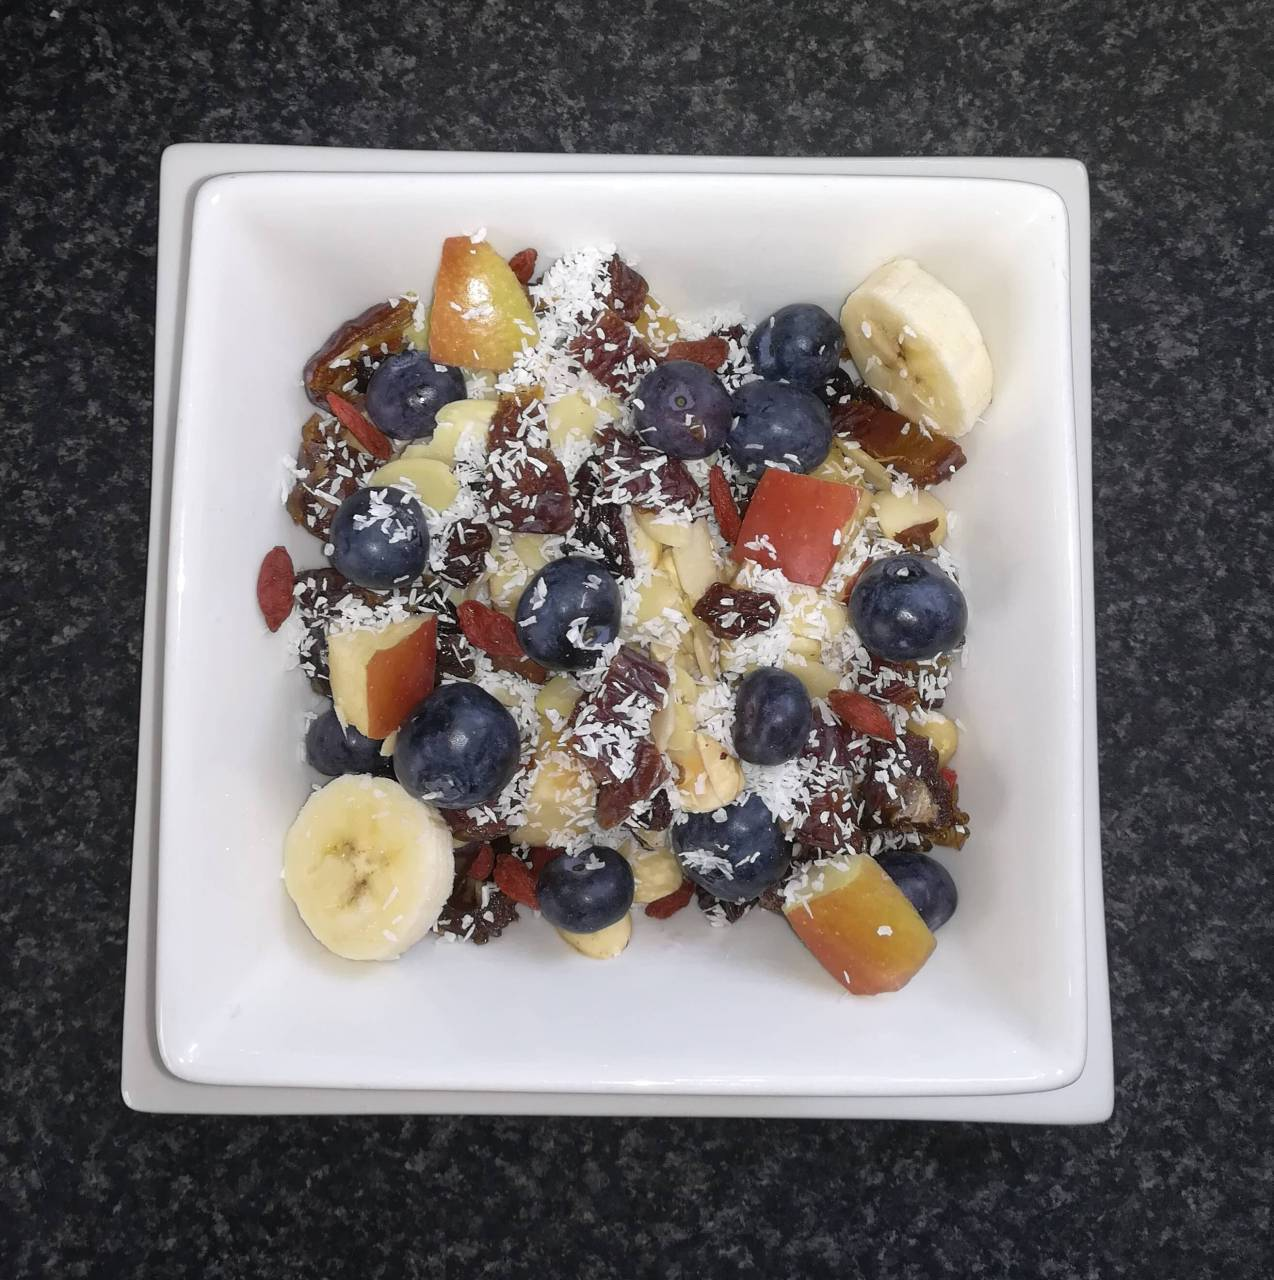 Untitled 2020-05-16 - Quick muesli with dried nuts, dried raisins, shredded coconut, fresh berries, bananas, apples and homemade coconut mylk